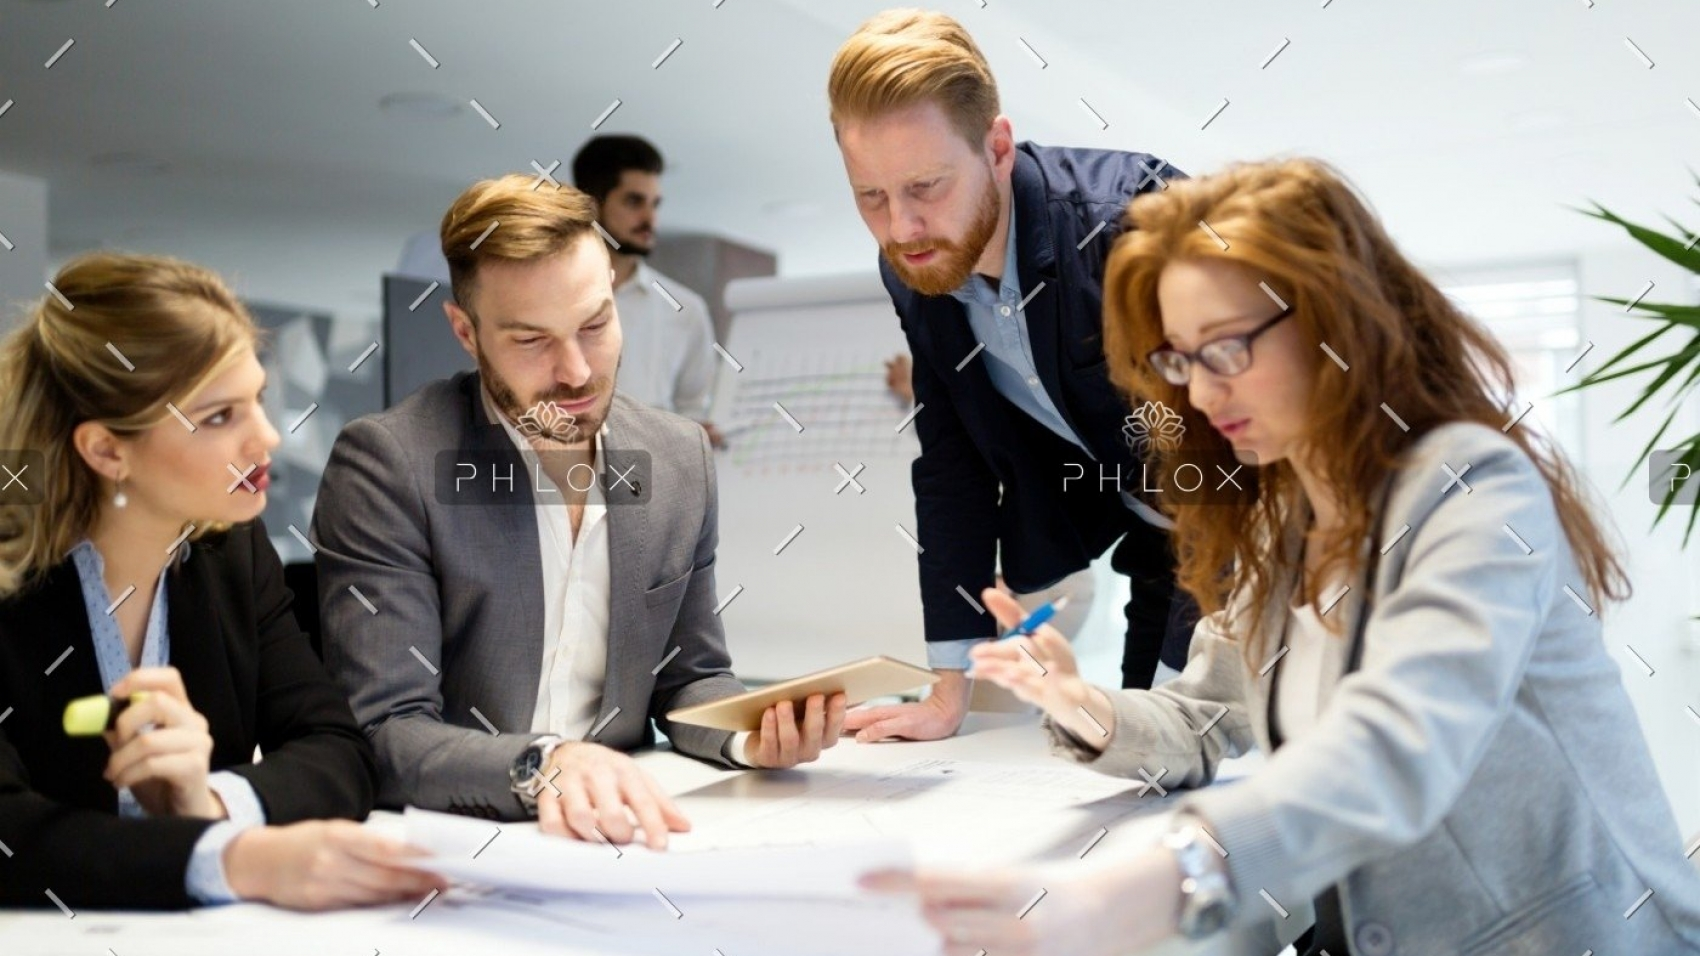 demo-attachment-1178-business-people-working-together-on-project-and-B3MZ4TX